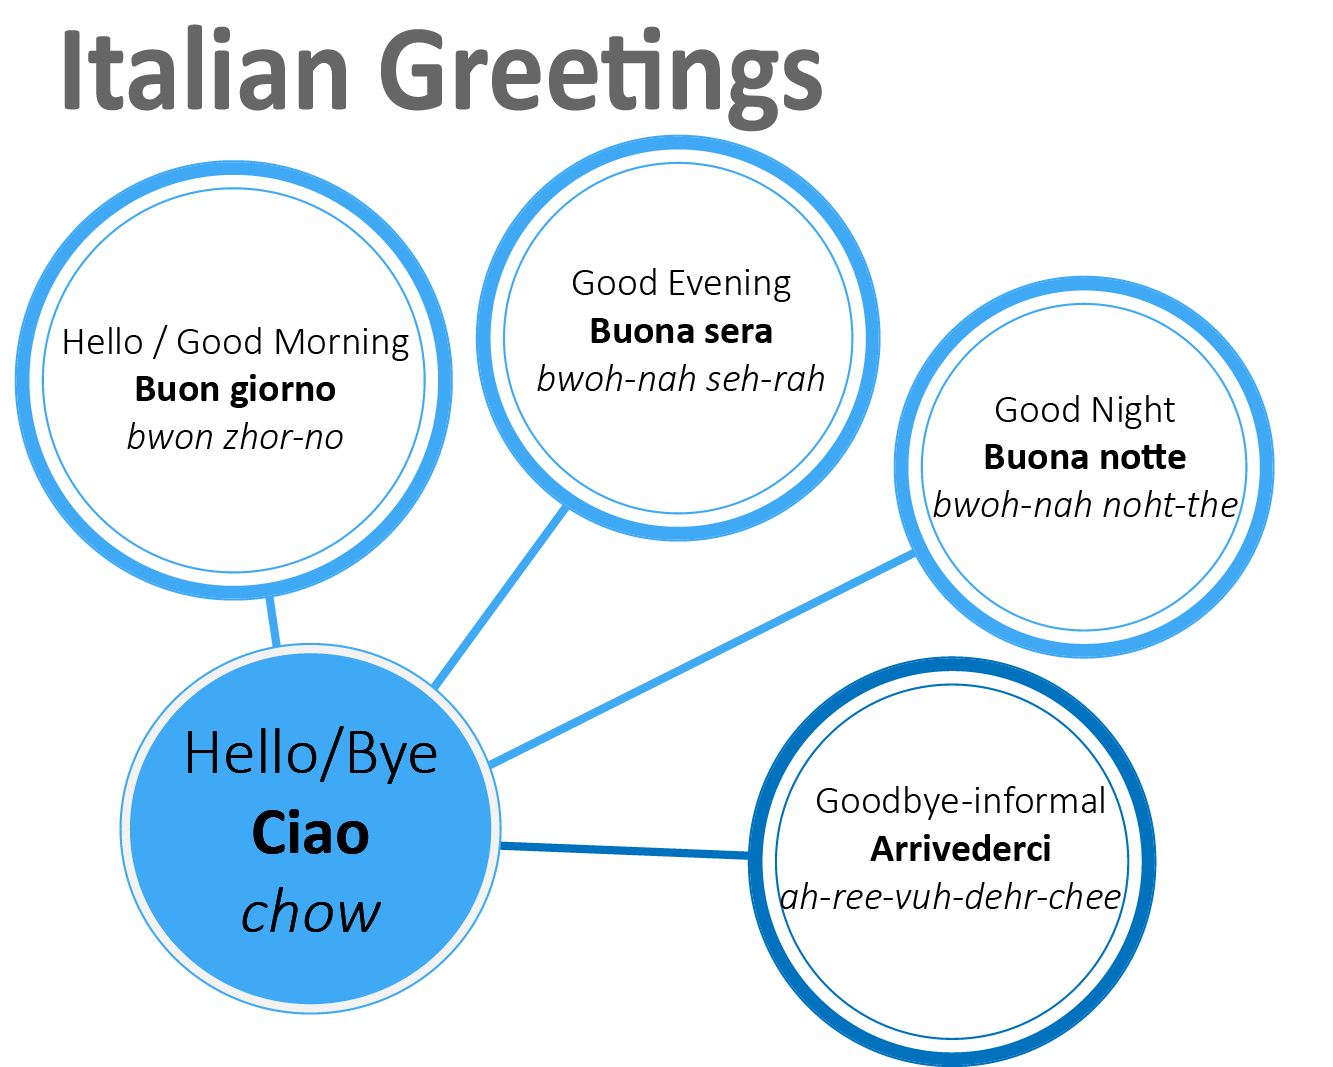 Italian greetings learn another language pinterest italian italian greetings kristyandbryce Images